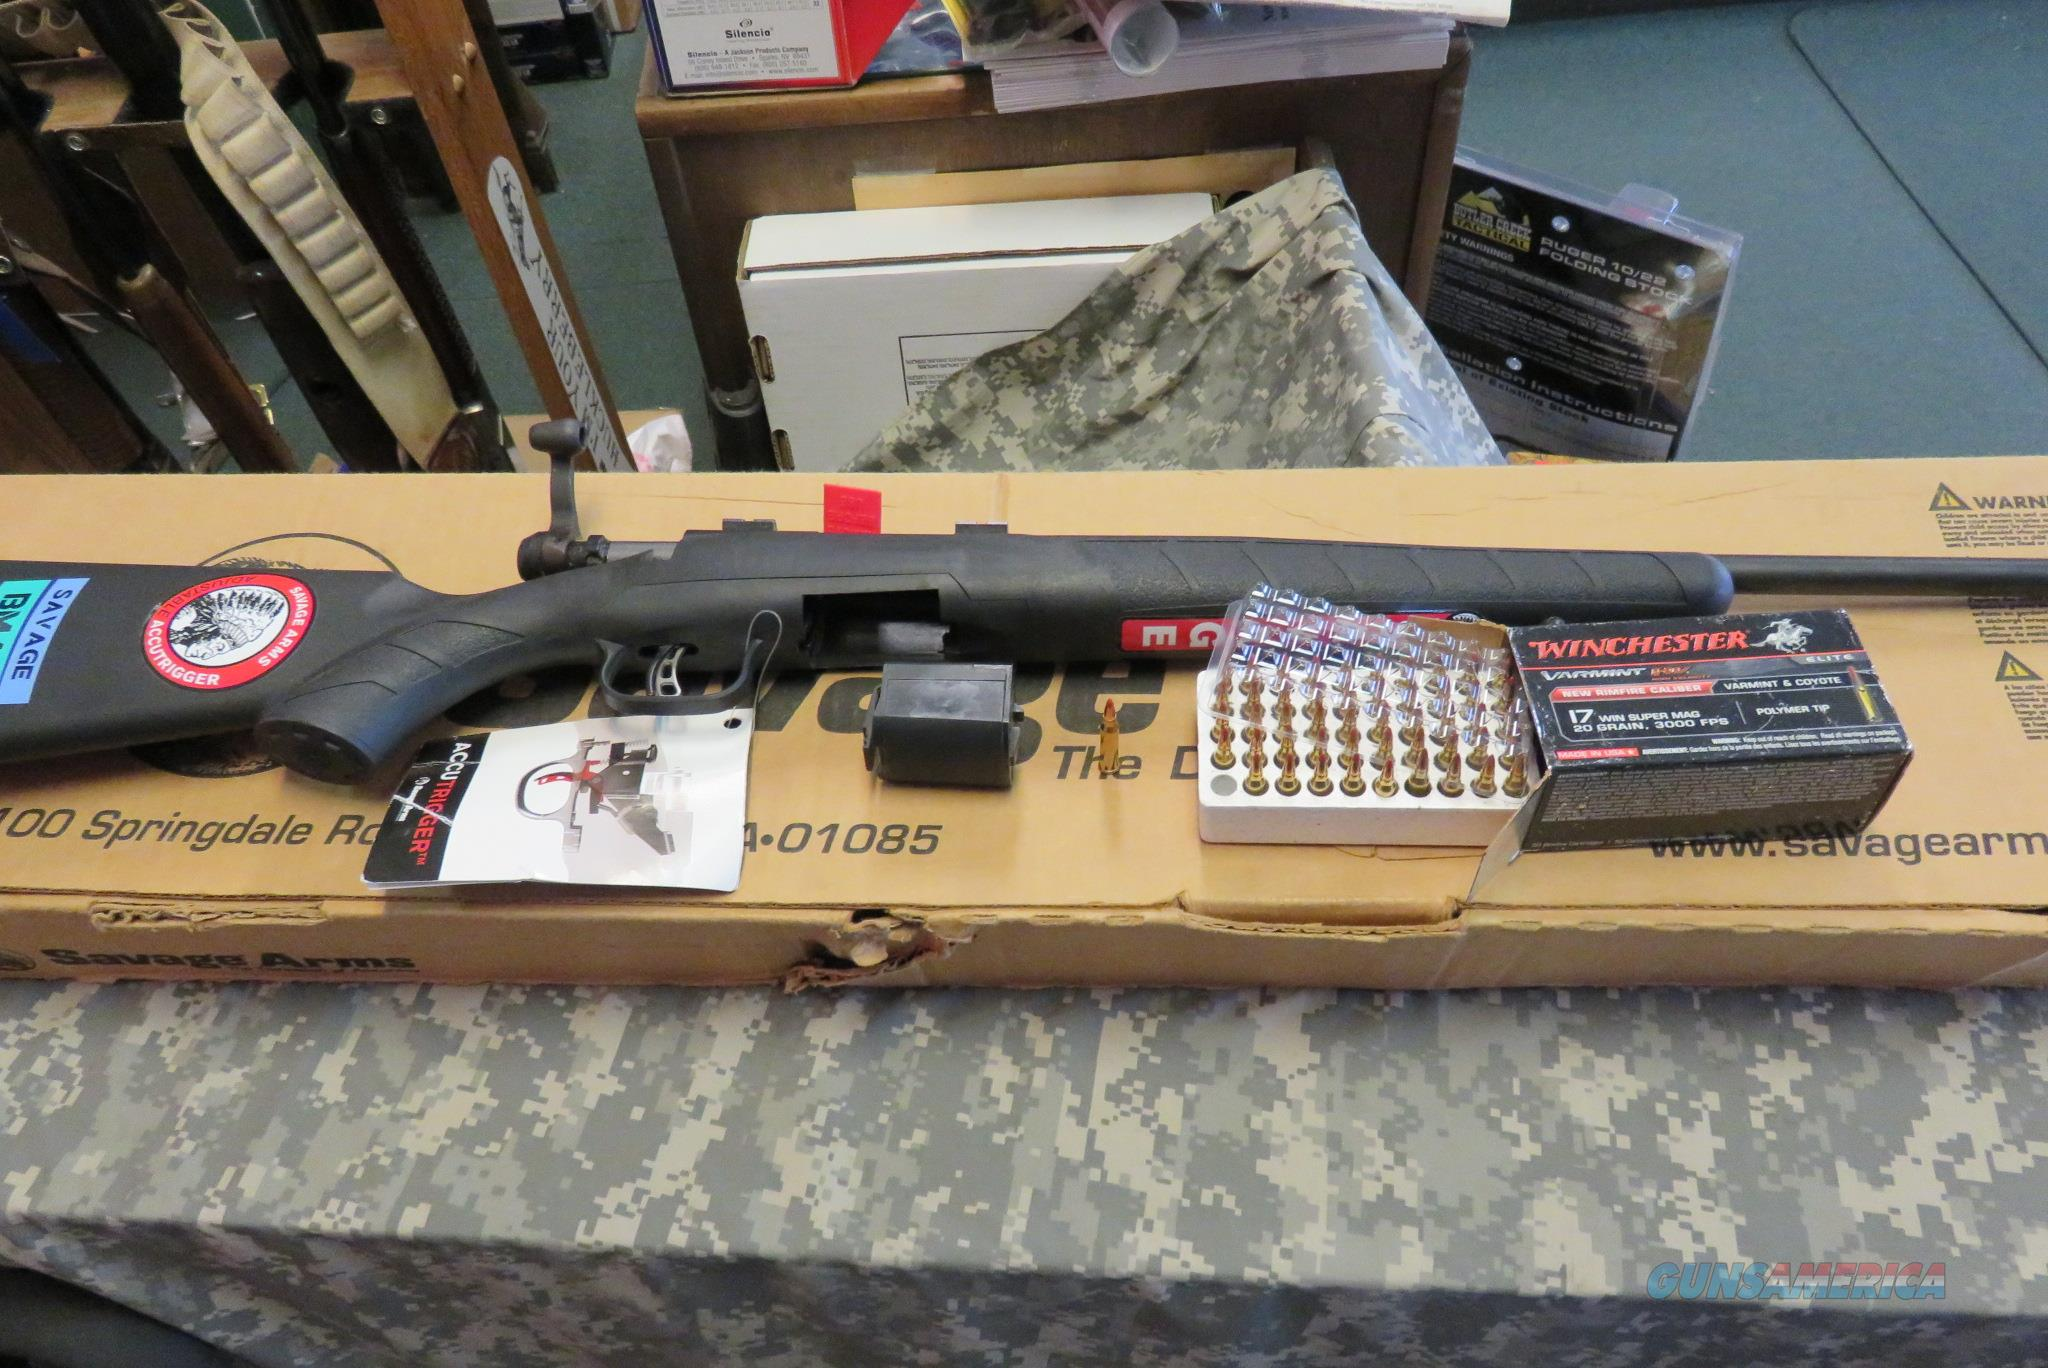 SAVAGE B MAG 17WSM BOLT RIFLE, BLUE, BLK SYN STOCK  Guns > Rifles > Savage Rifles > Rimfire